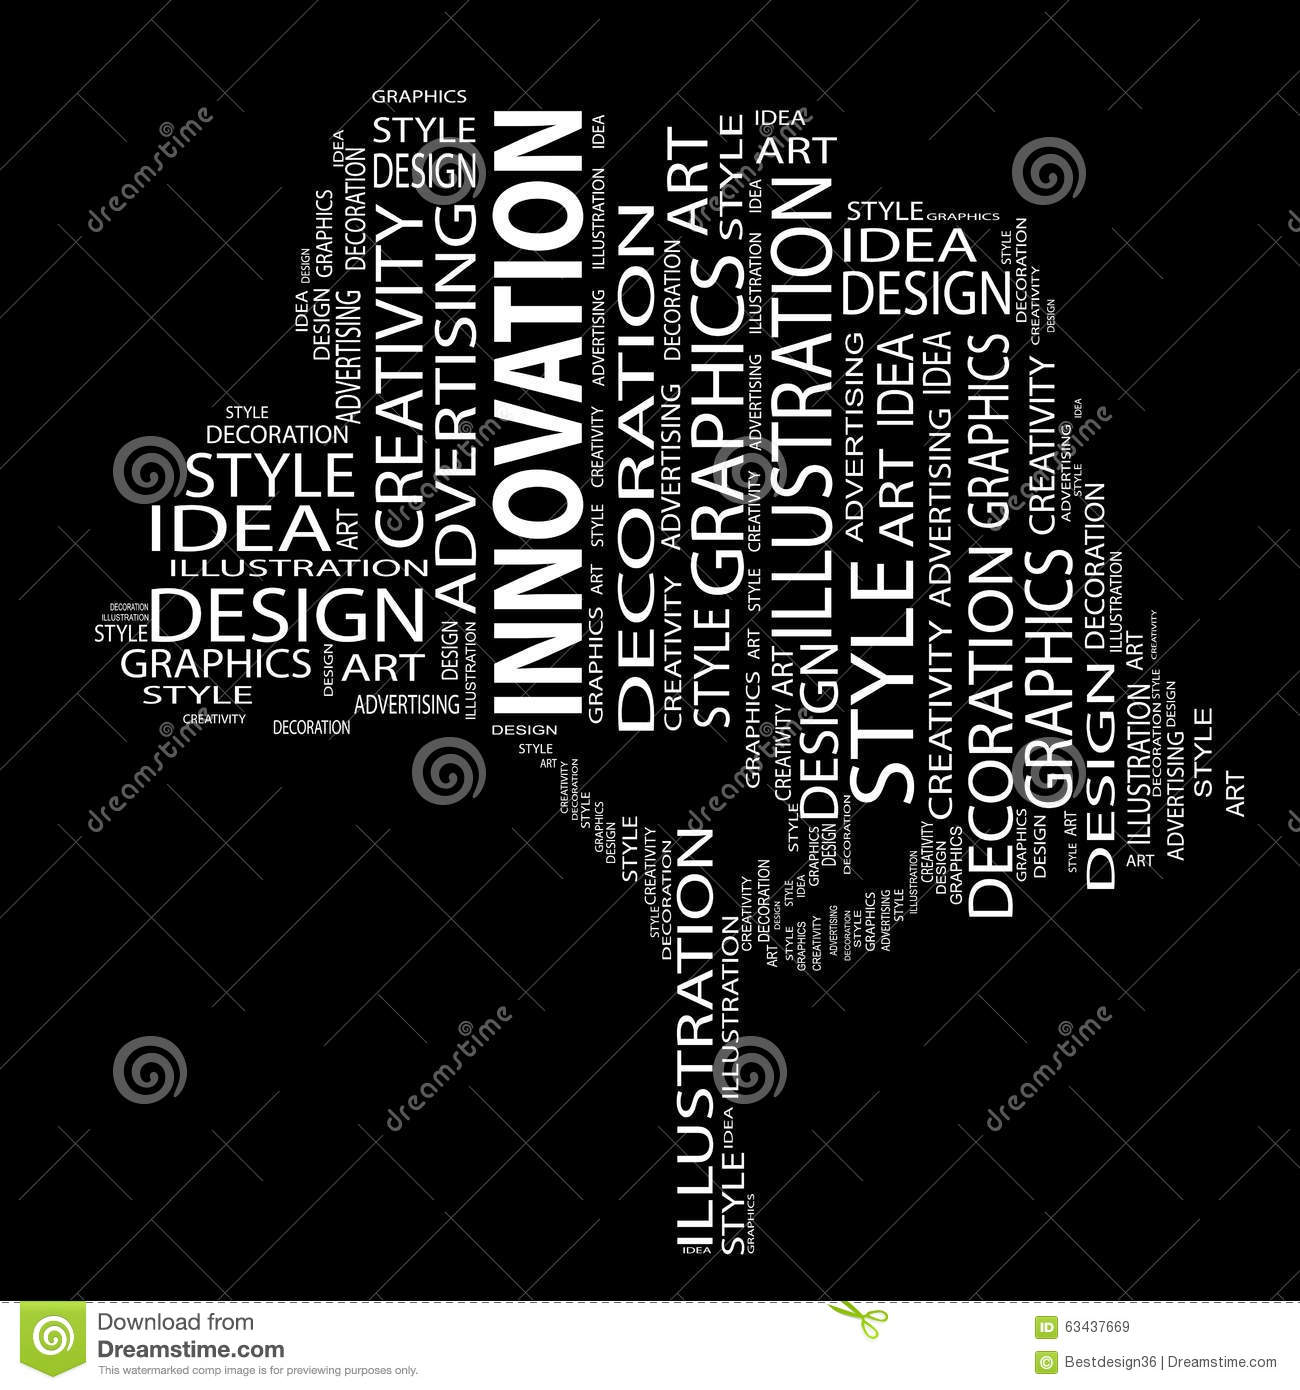 Conceptual Art Design Tree Word Cloud Illustration 63437669